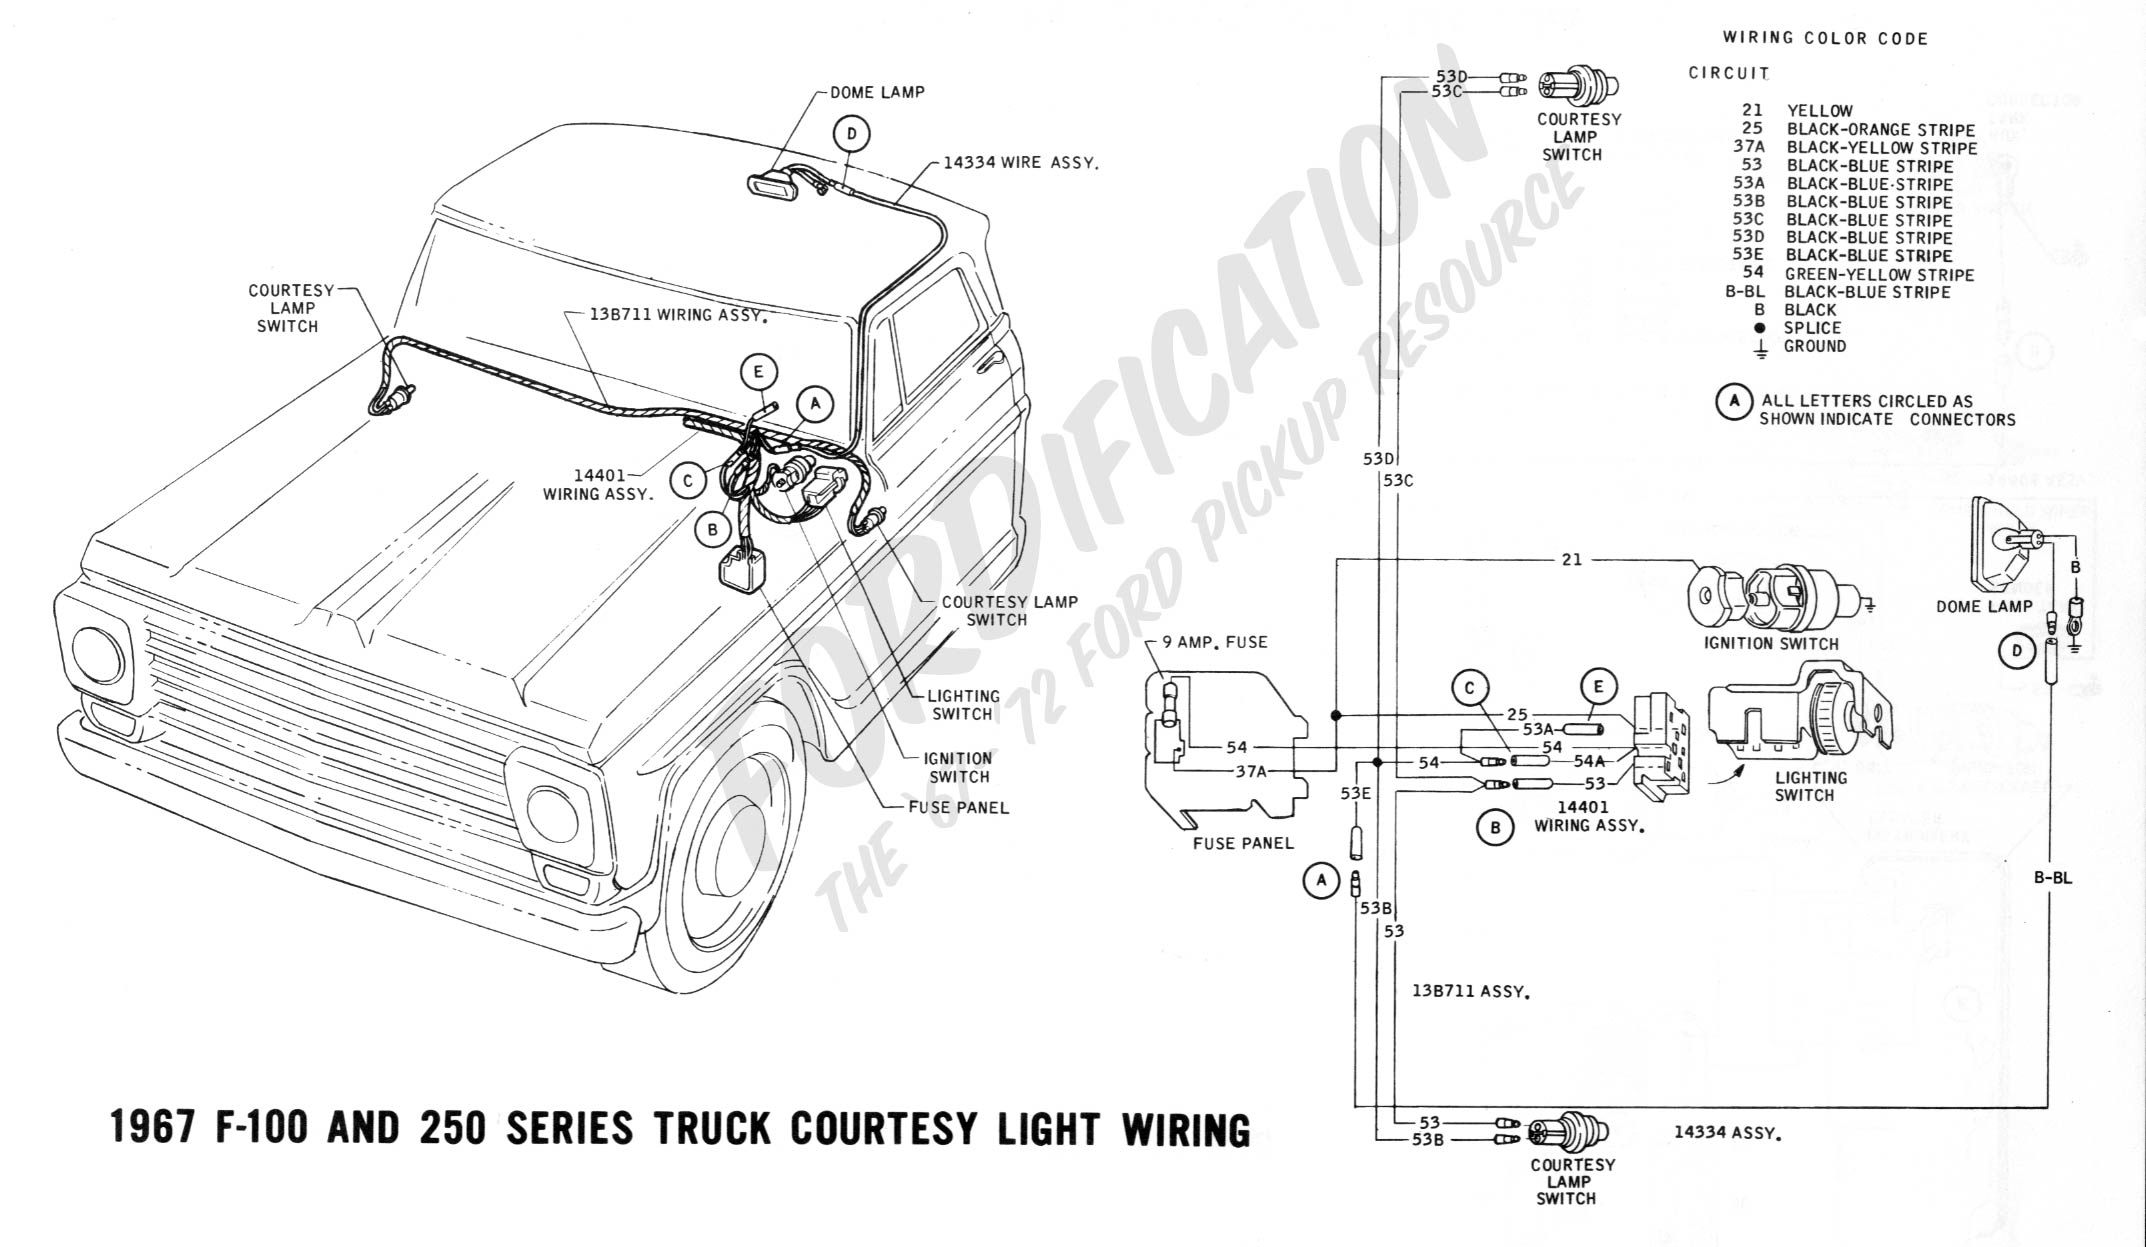 wiring 1967courtesylight wiring in ignition switch in 1966 f100 ford truck enthusiasts forums Ford E 350 Wiring Diagrams at creativeand.co